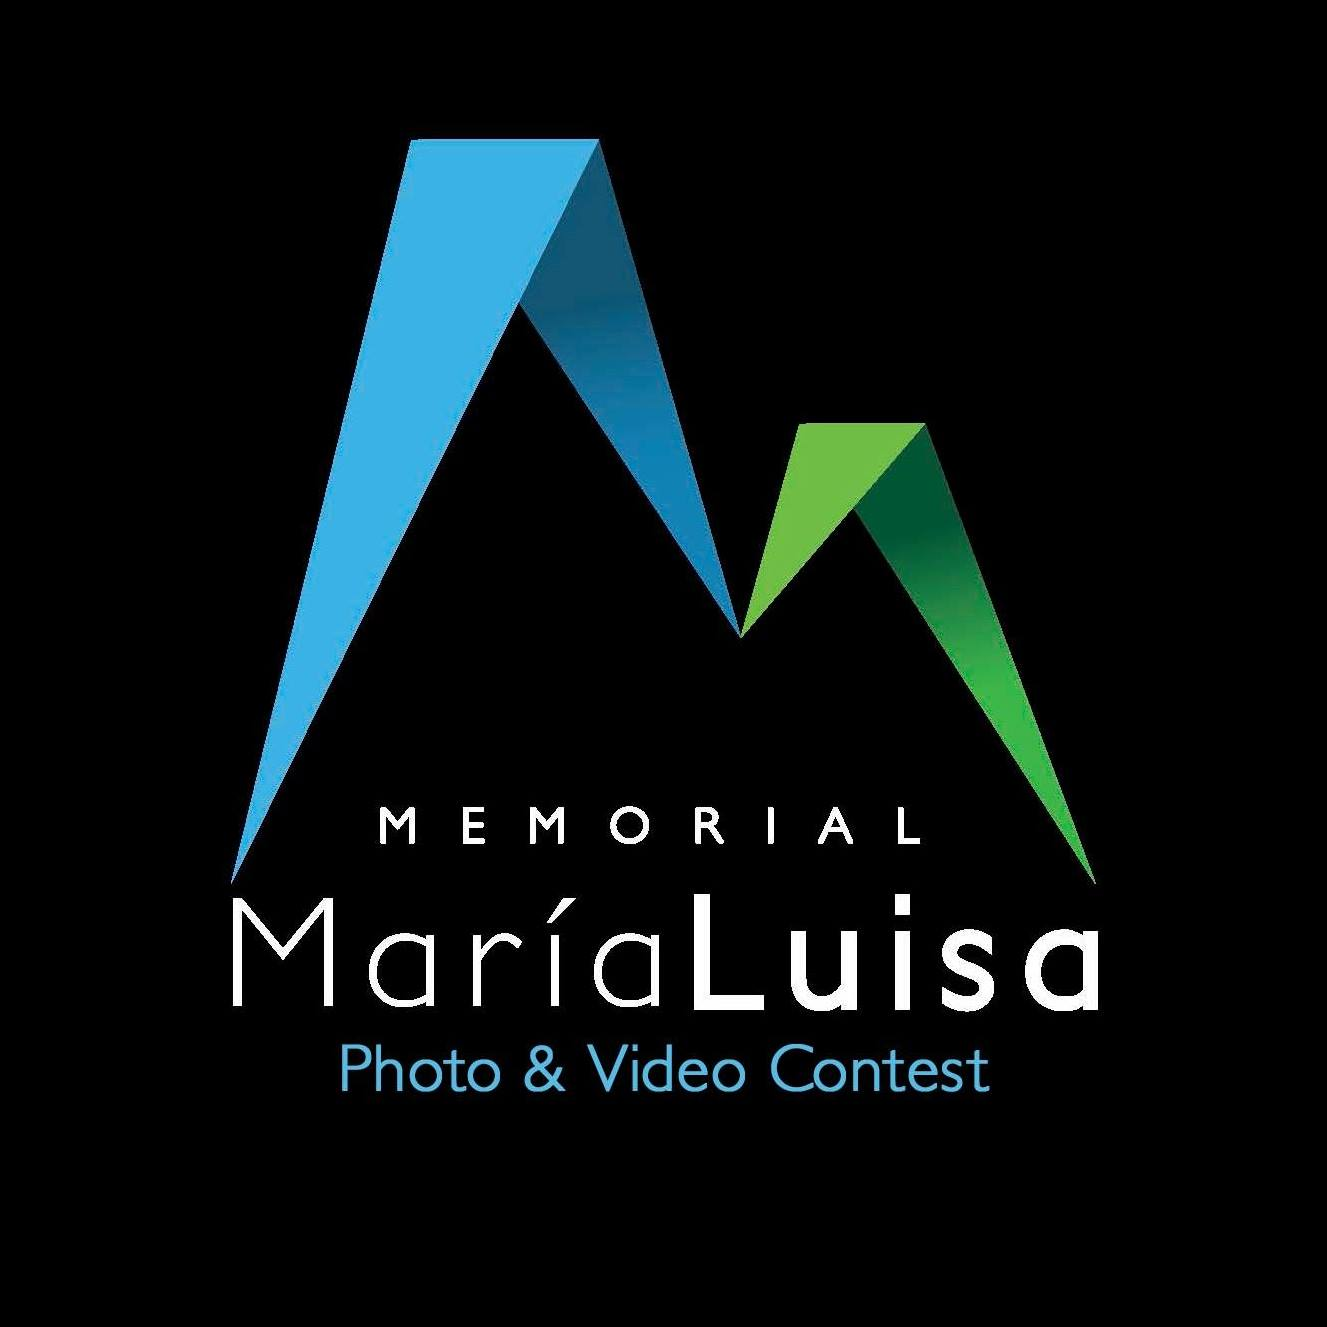 31 Memorial Maria Luisa Mountain, Nature and Adventure Photo Contest